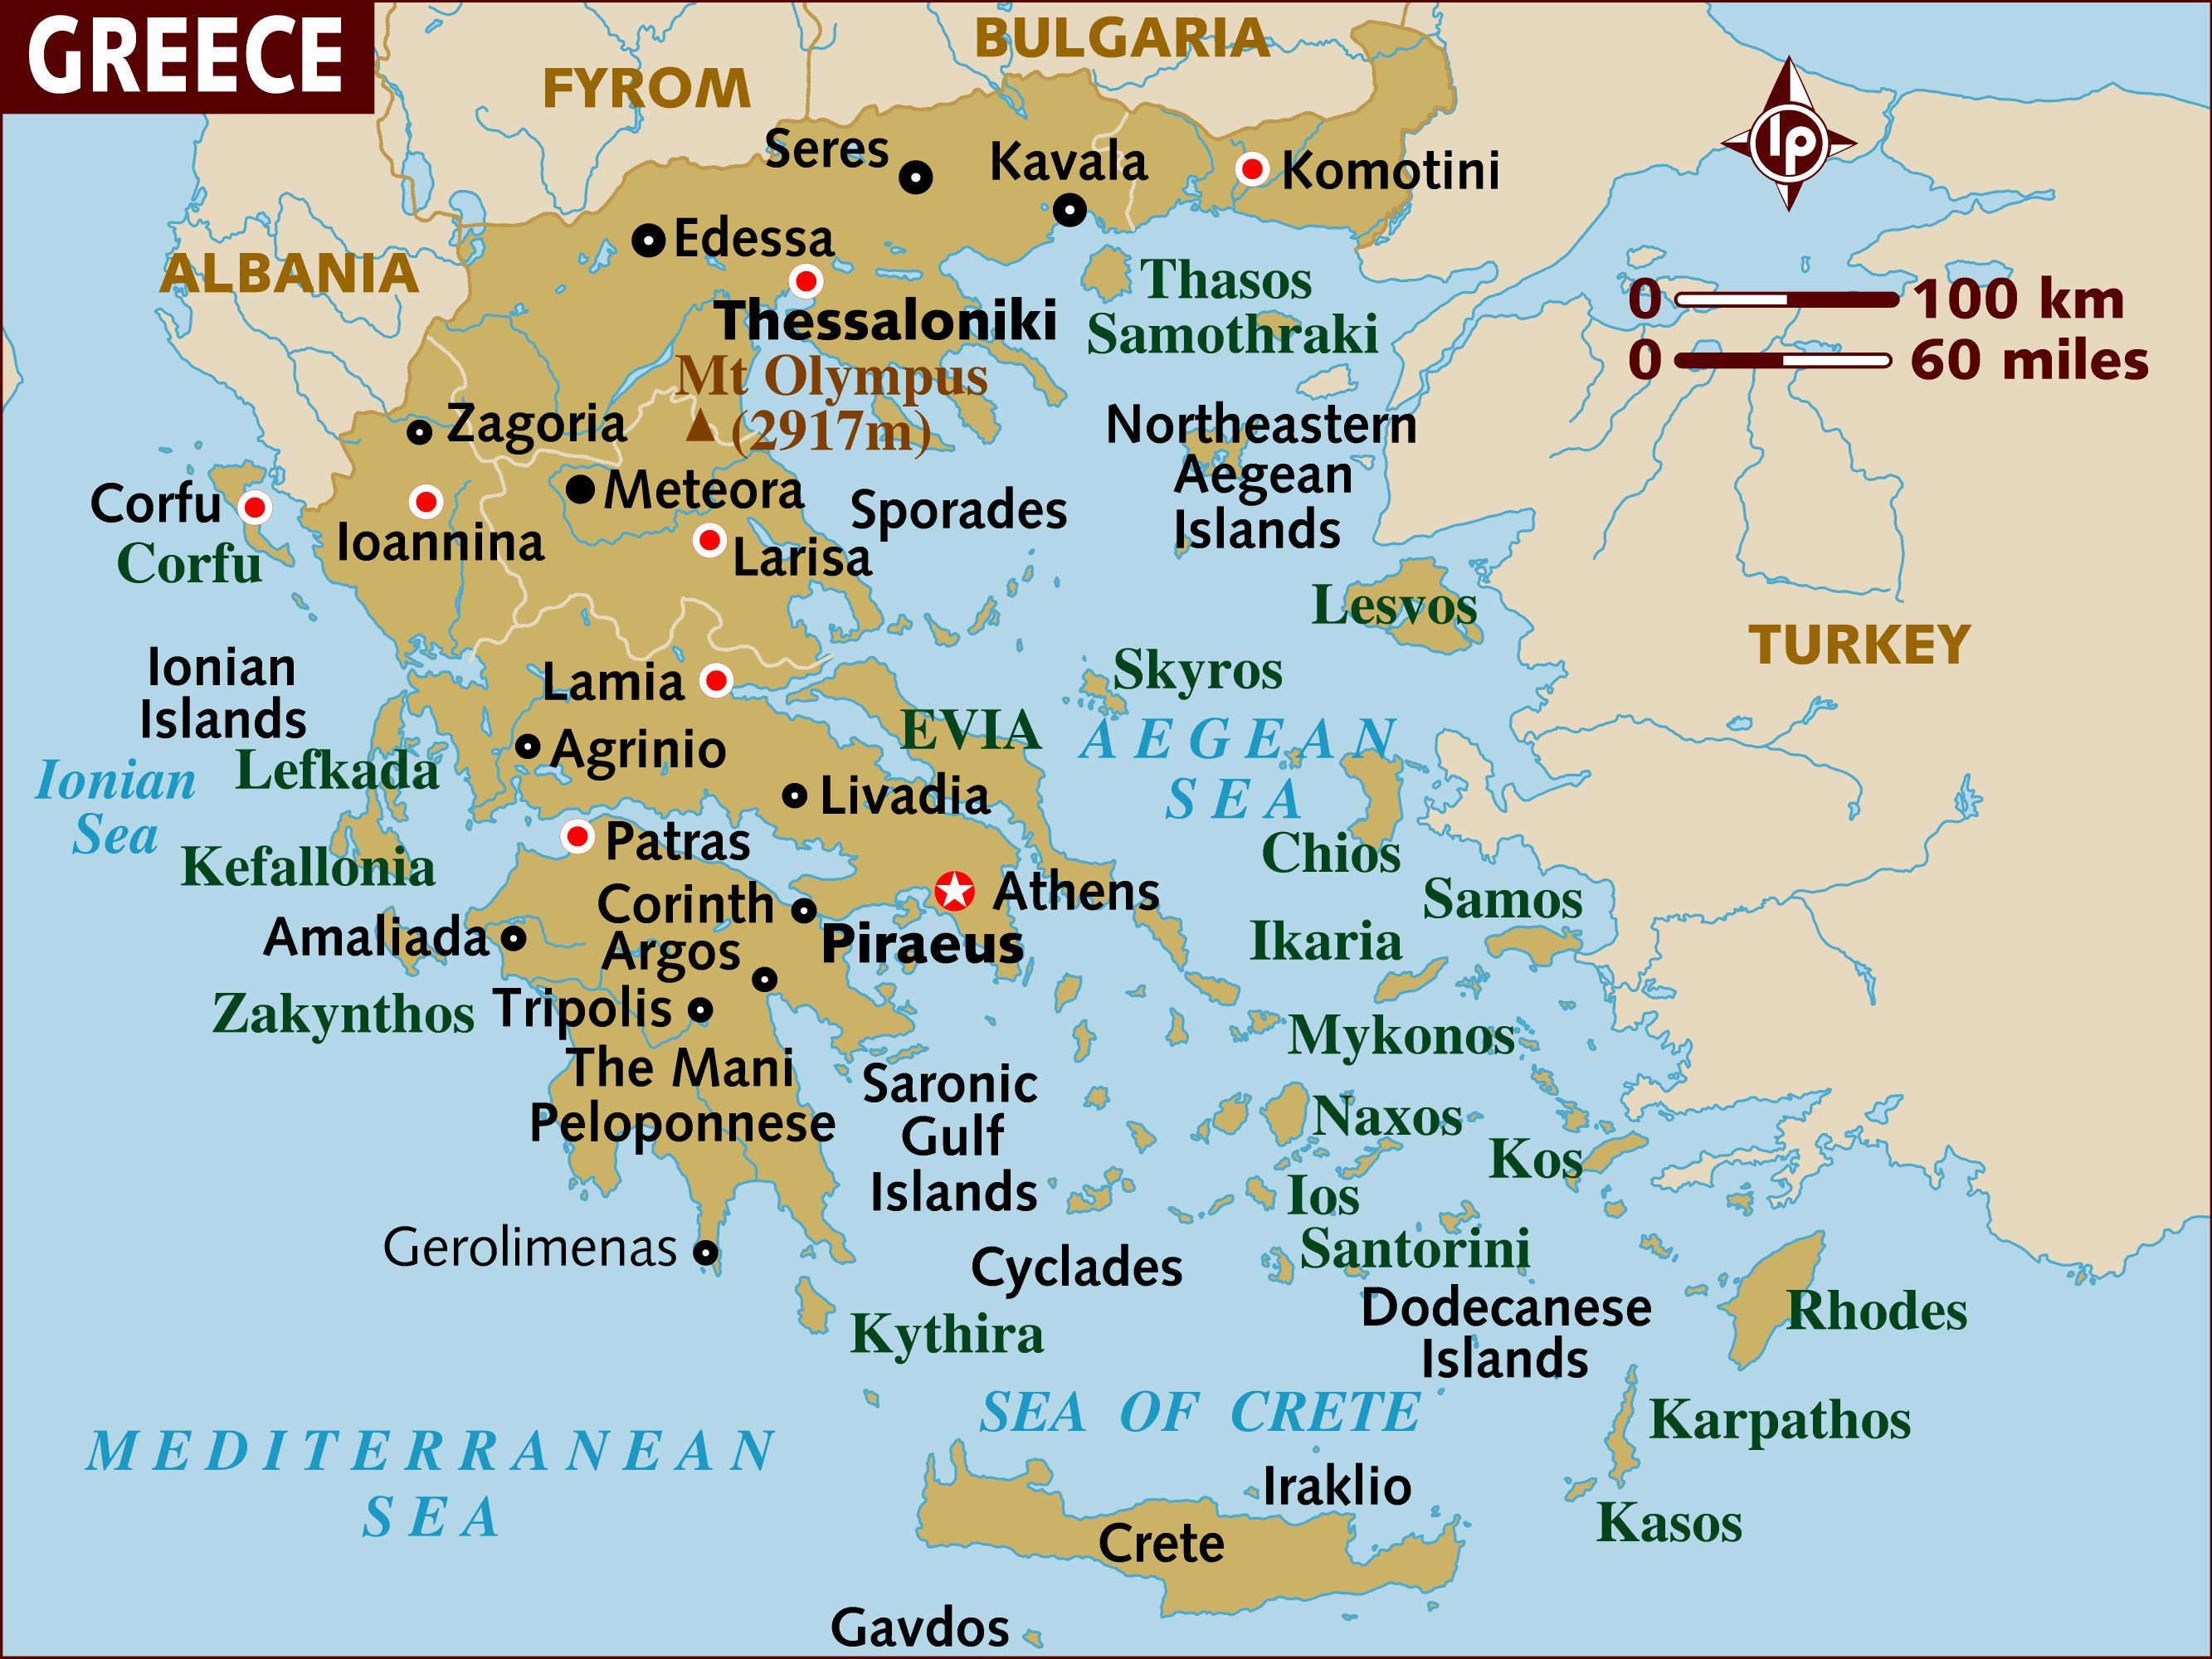 Map of Greece - a Basic Map of Greece and the Greek Isles Map Of Ancient Greece India on map of eastern mediterranean, map of persian empire, crete greece, map of athens, olympic games in greece, delphi greece, map of persia, map of greece and surrounding areas, map of mediterranean sea, peloponnese greece, map of greece today, map of troy, map of roman empire, ithica greece, map of corinth greece, map of balkan peninsula, map of mesopotamia, map of modern greece, epirus greece, parthenon greece,